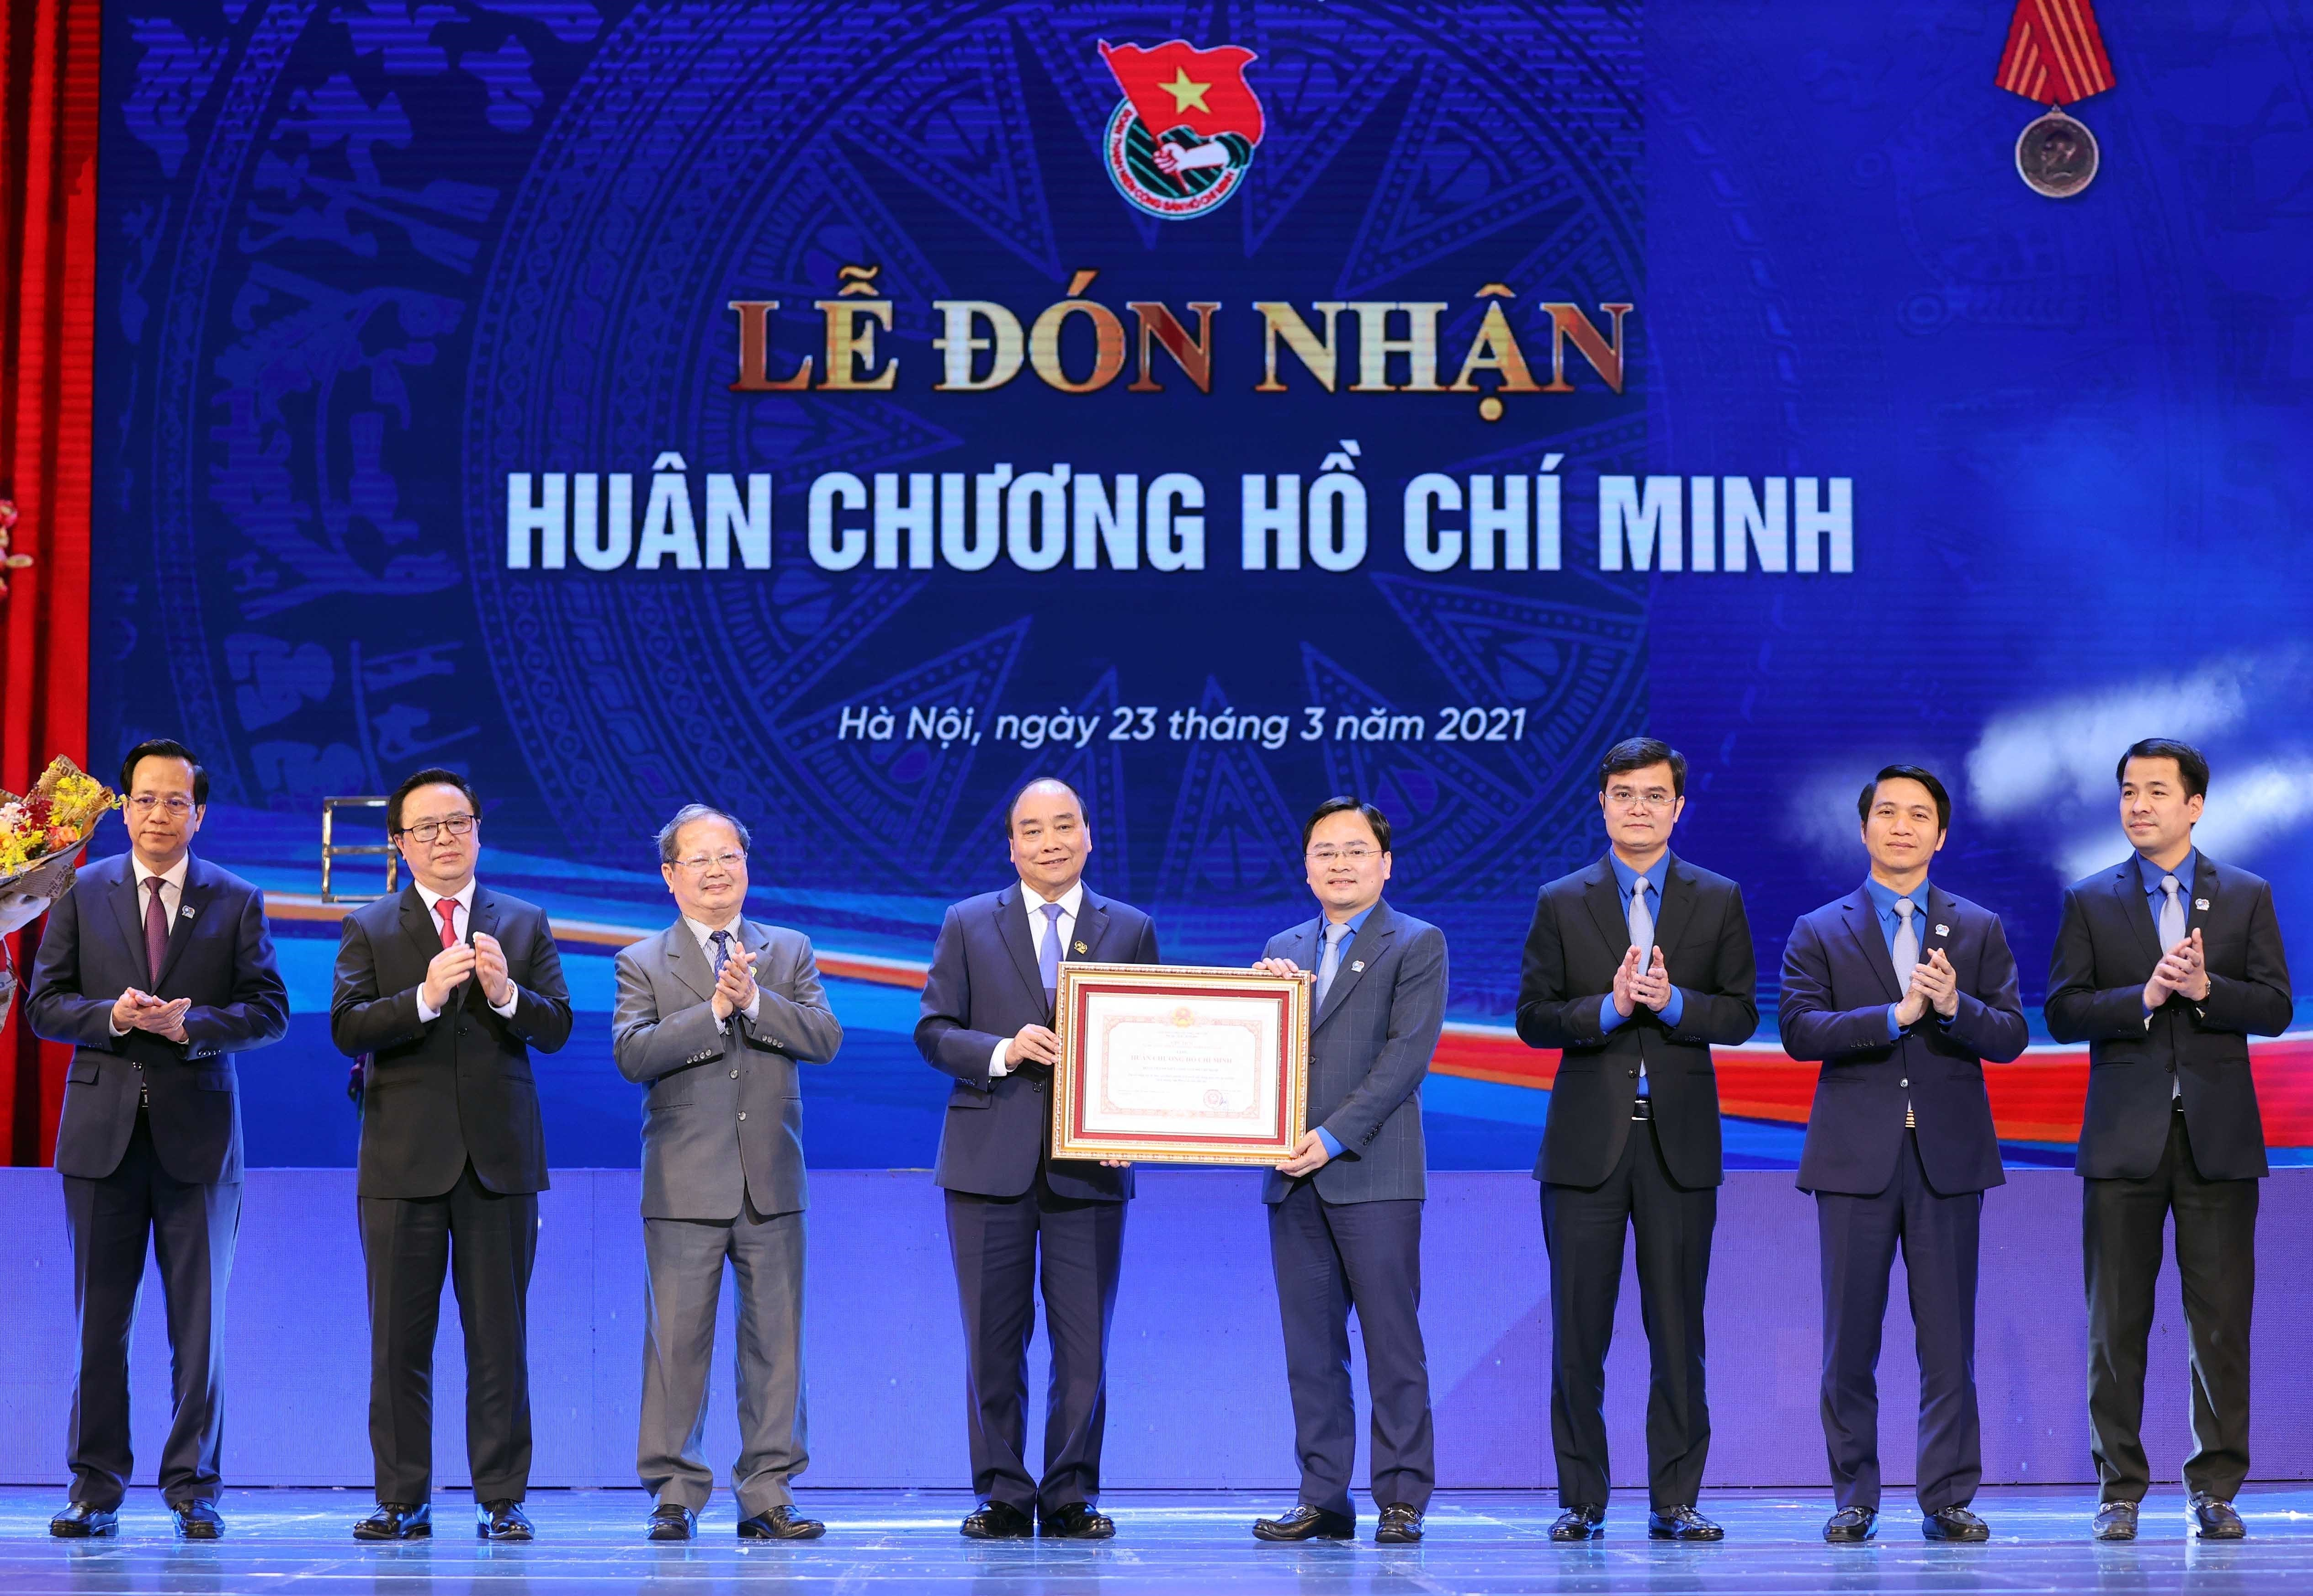 Ceremony marks Youth Union's 90th founding anniversary hinh anh 3